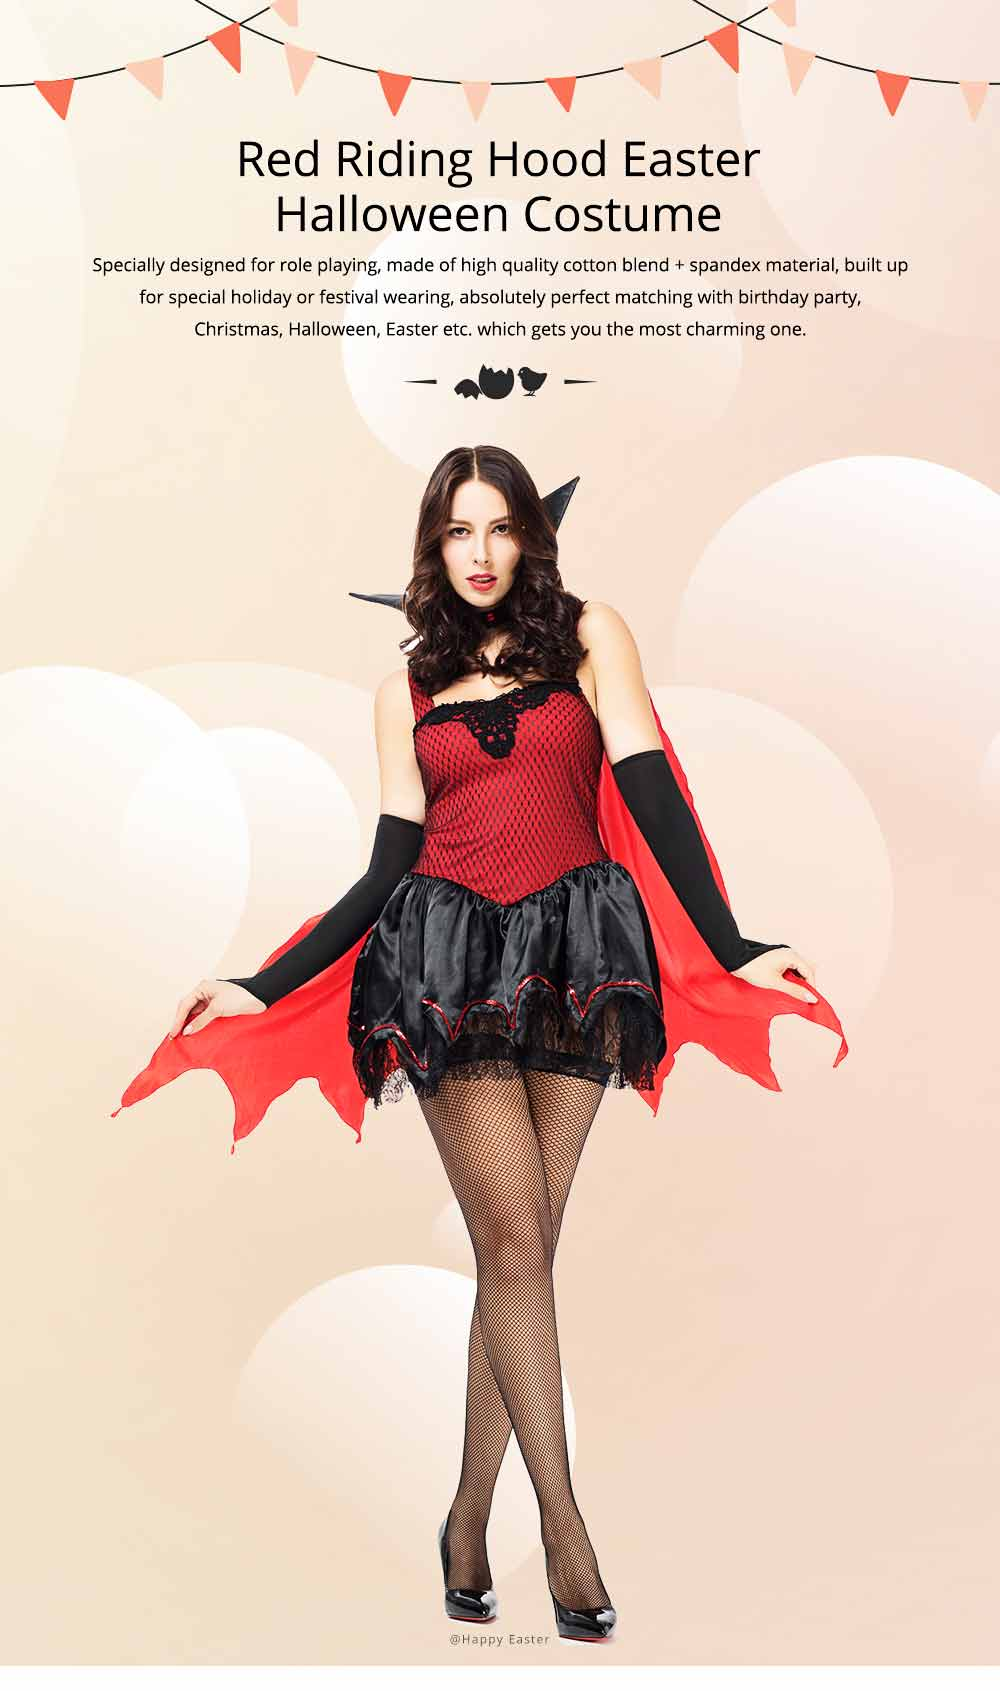 Red Riding Hood Easter Costume, Halloween Costumes for Women Adult Cosplay Dress Role Playing Costume 0